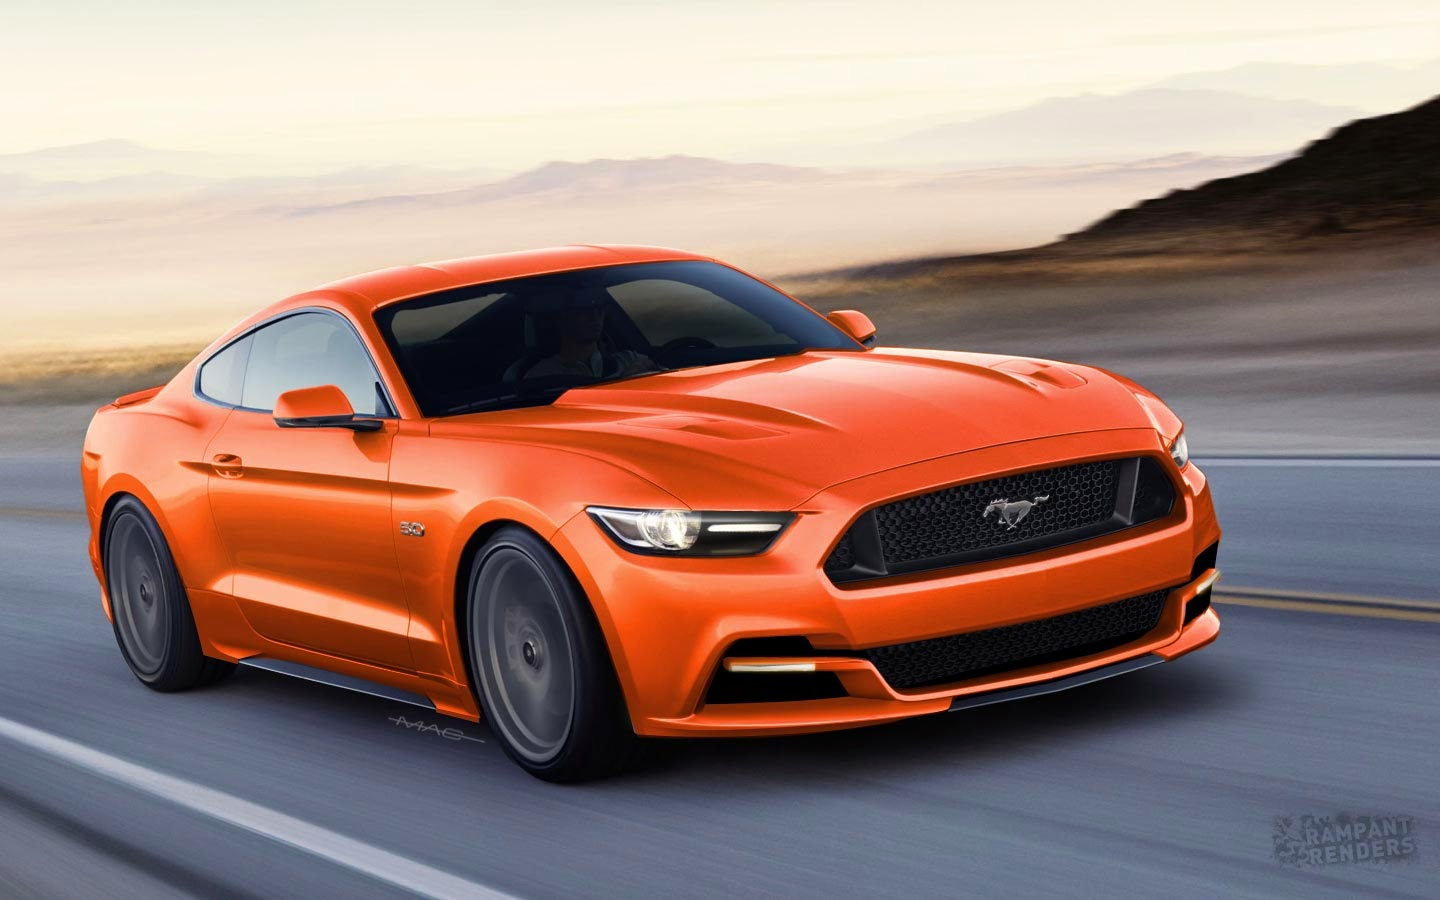 Attractive 2015 Ford Mustang Convertible Sports Cars Are Now More Powerful